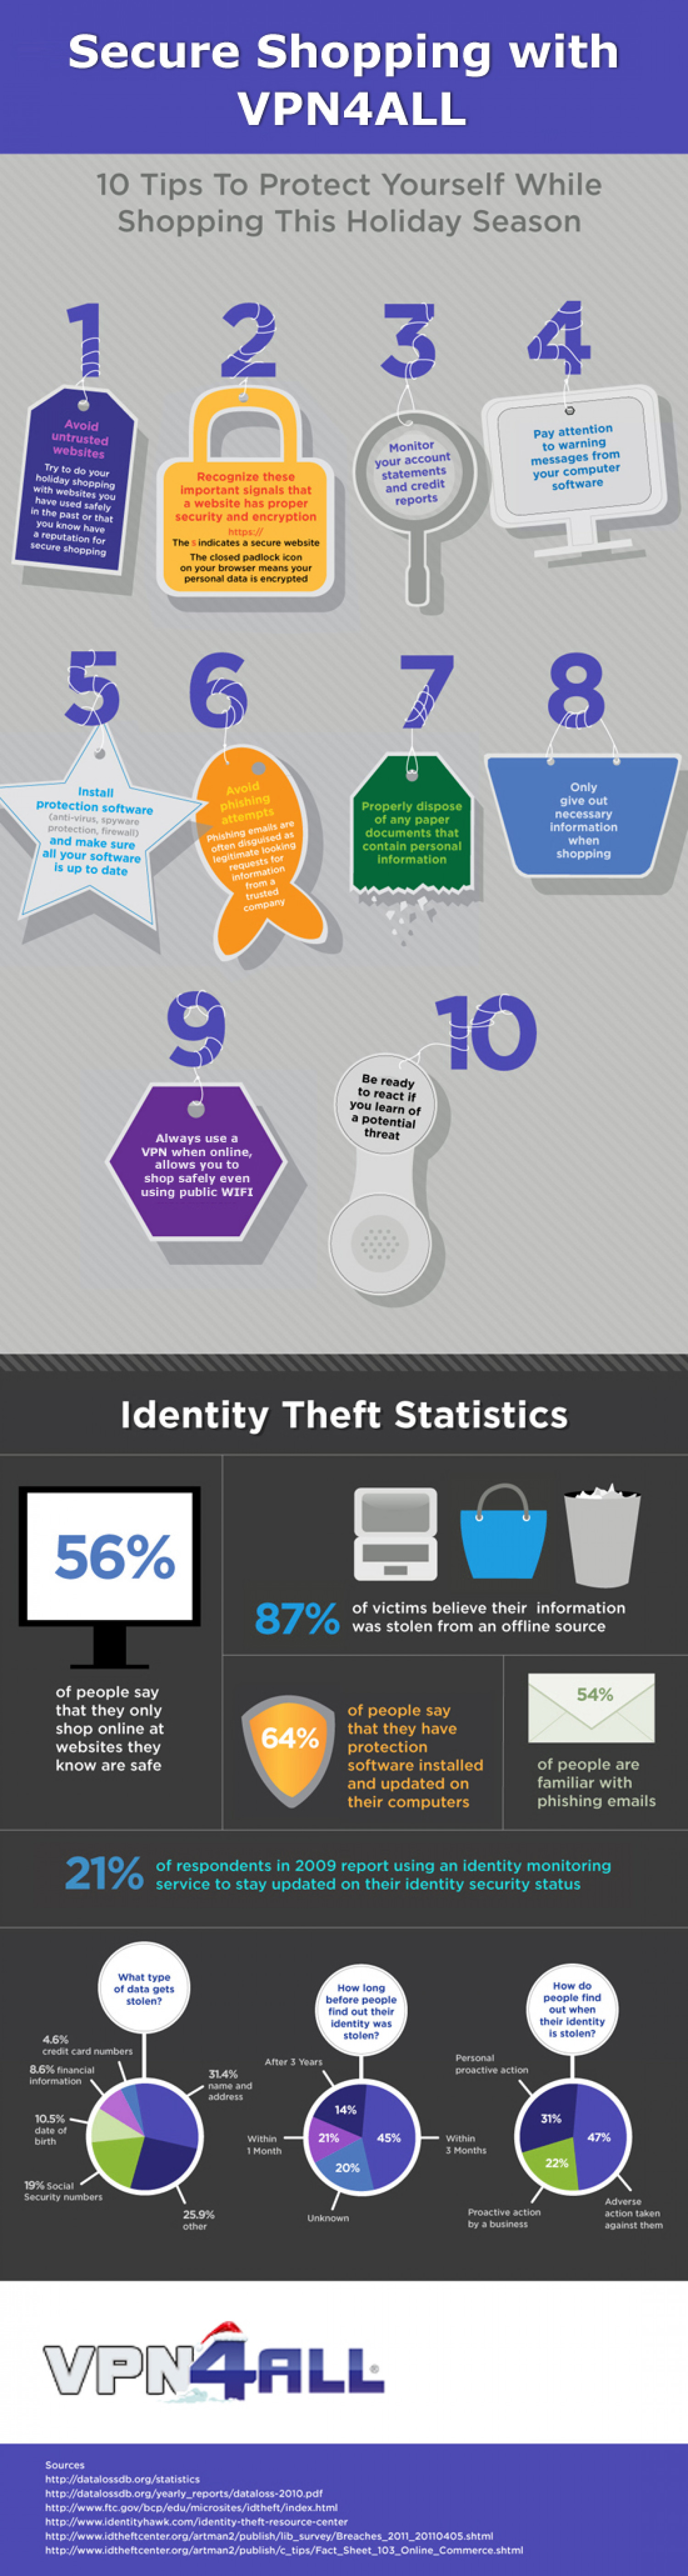 Secure Shopping With VPN4ALL Infographic